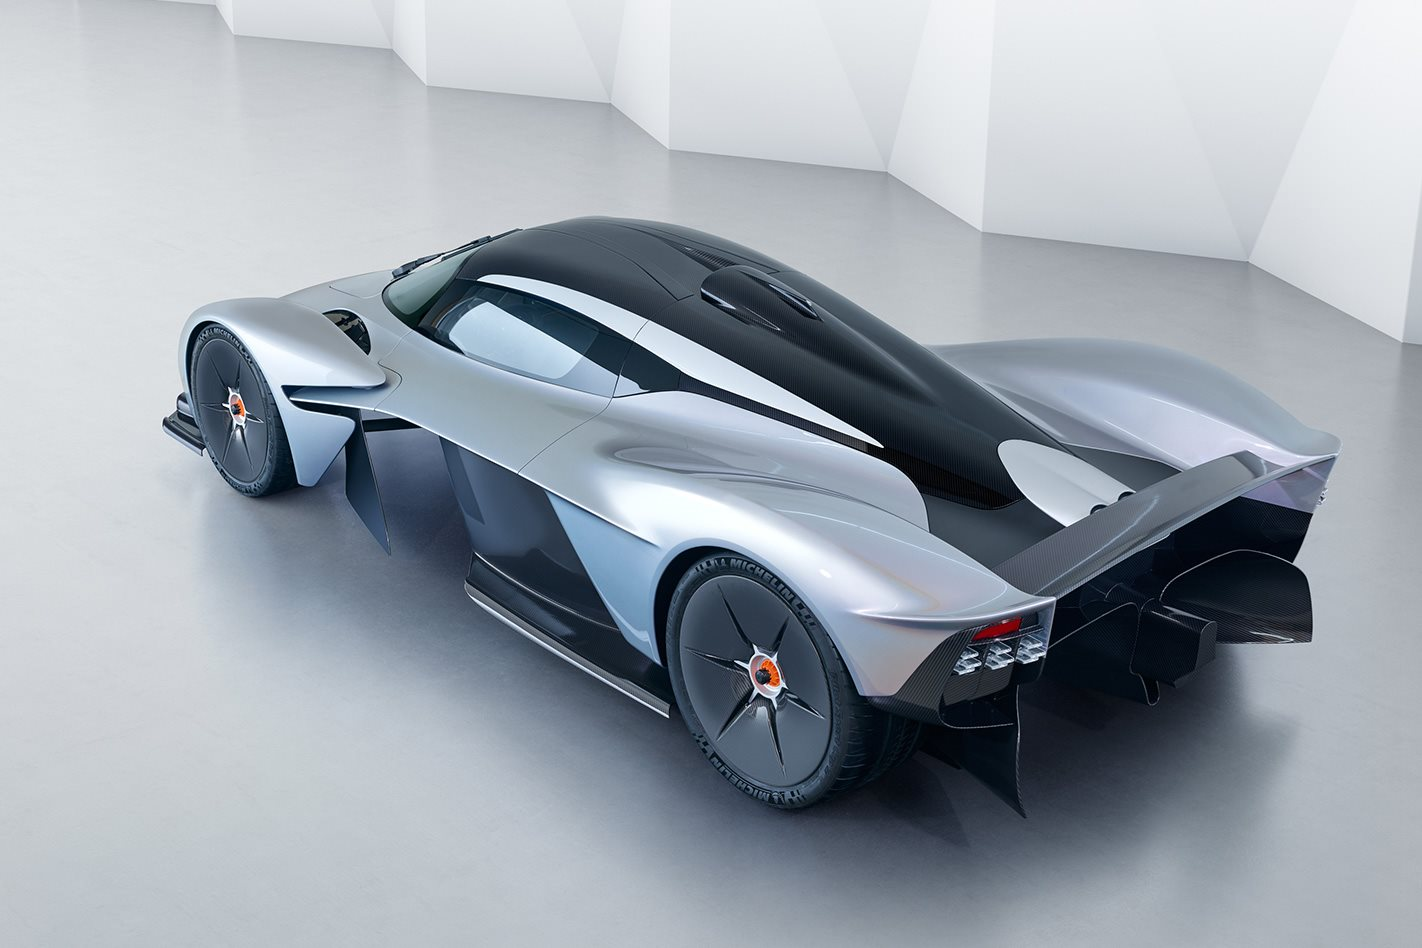 Forget Turbos This Is Perfection Aston Martin Valkyrie S 735kw Heart